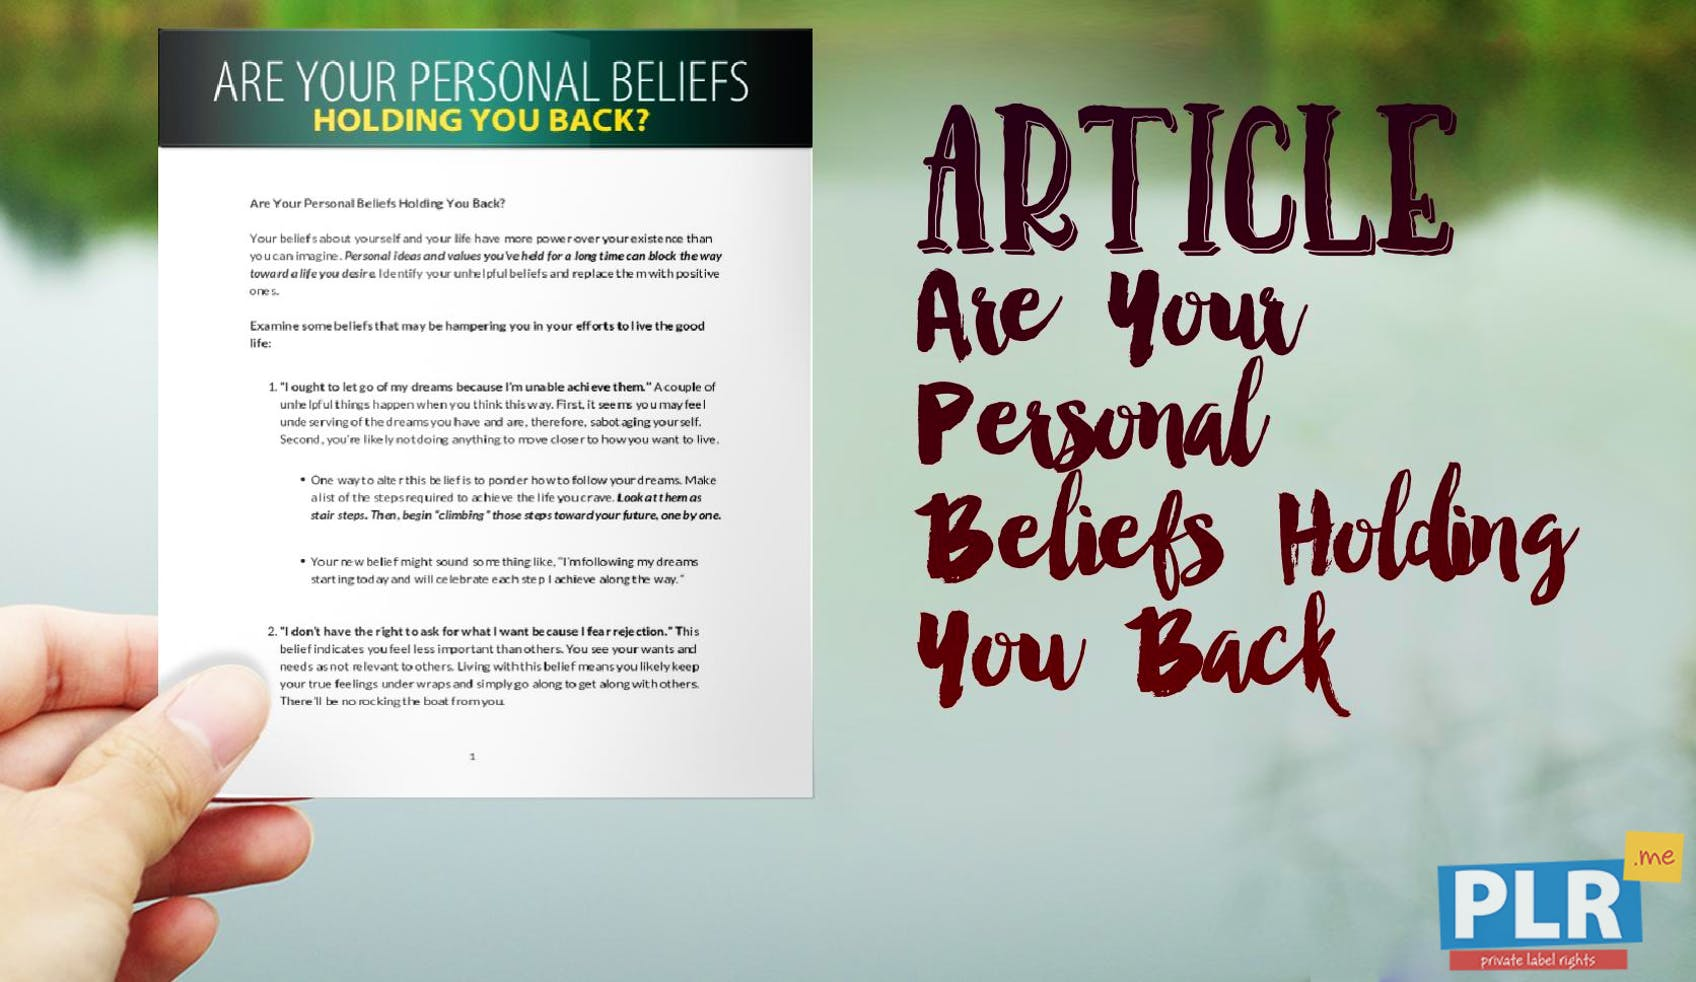 Are Your Personal Beliefs Holding You Back